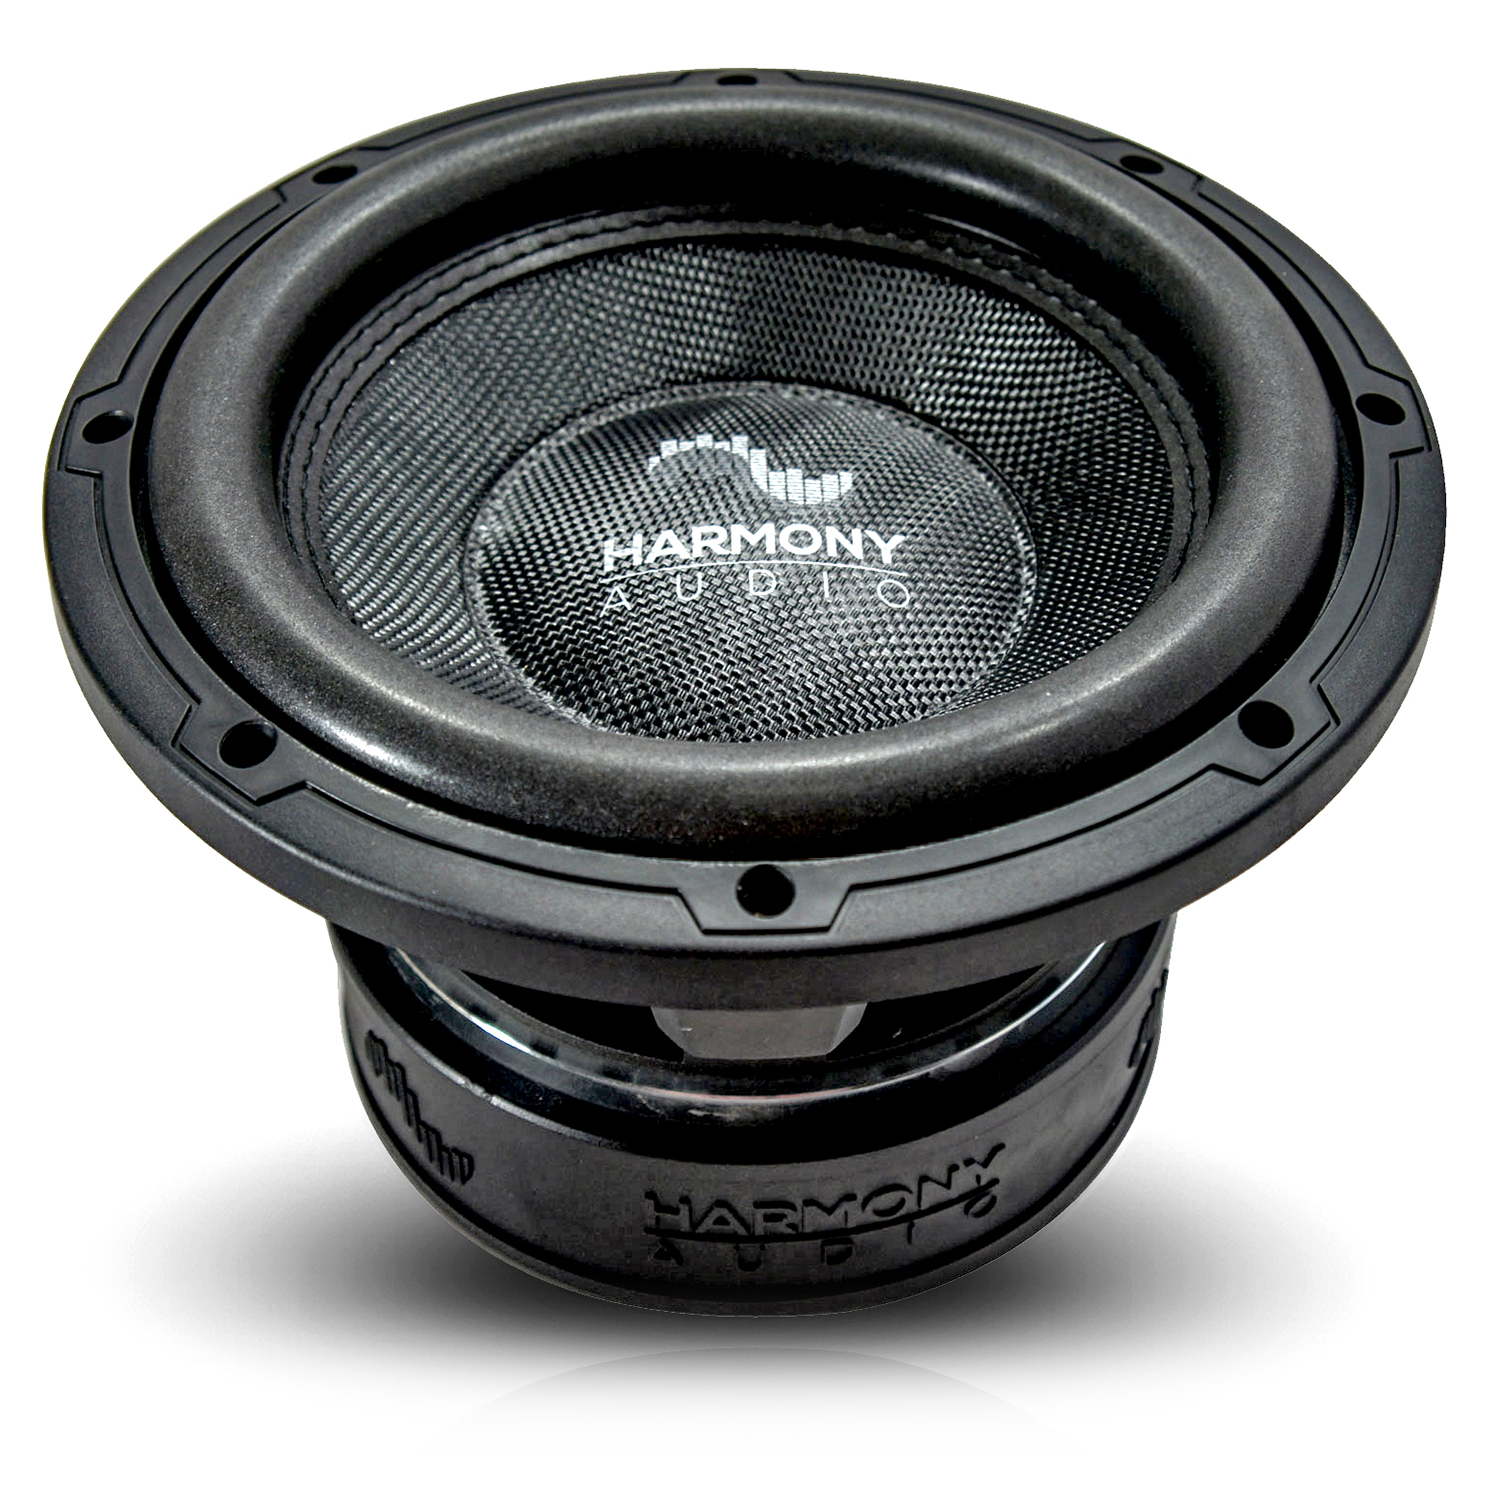 "Harmony Audio HA-C102 Car Stereo Competition Carbon 10"" Sub 2000W Dual 2 Ohm Subwoofer New"